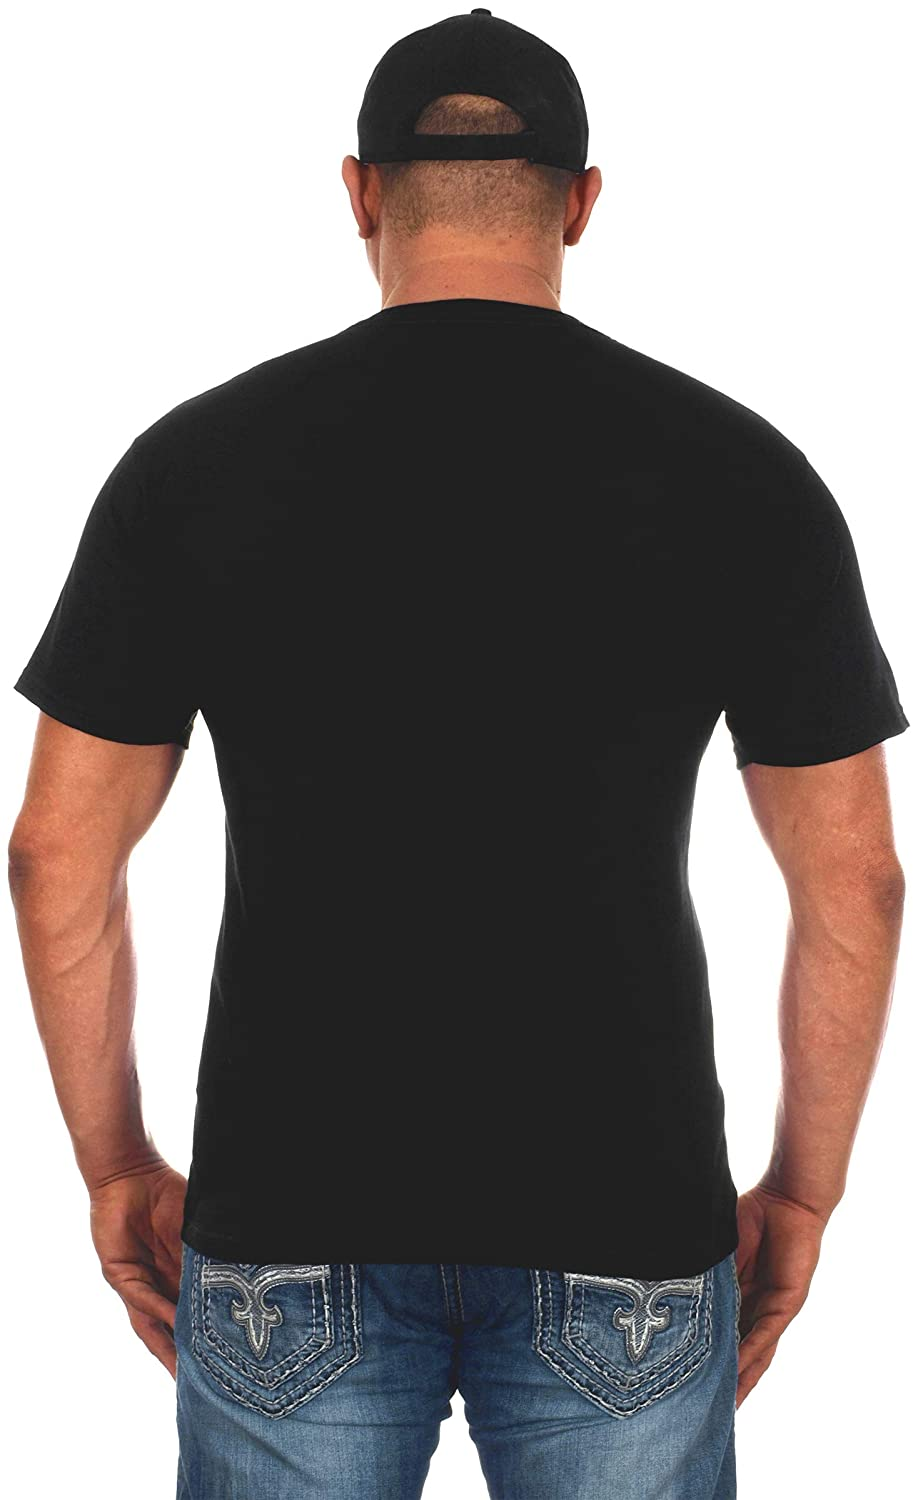 JH DESIGN GROUP Mens Ford Truck T-Shirts Two Styles Black /& Charcoal